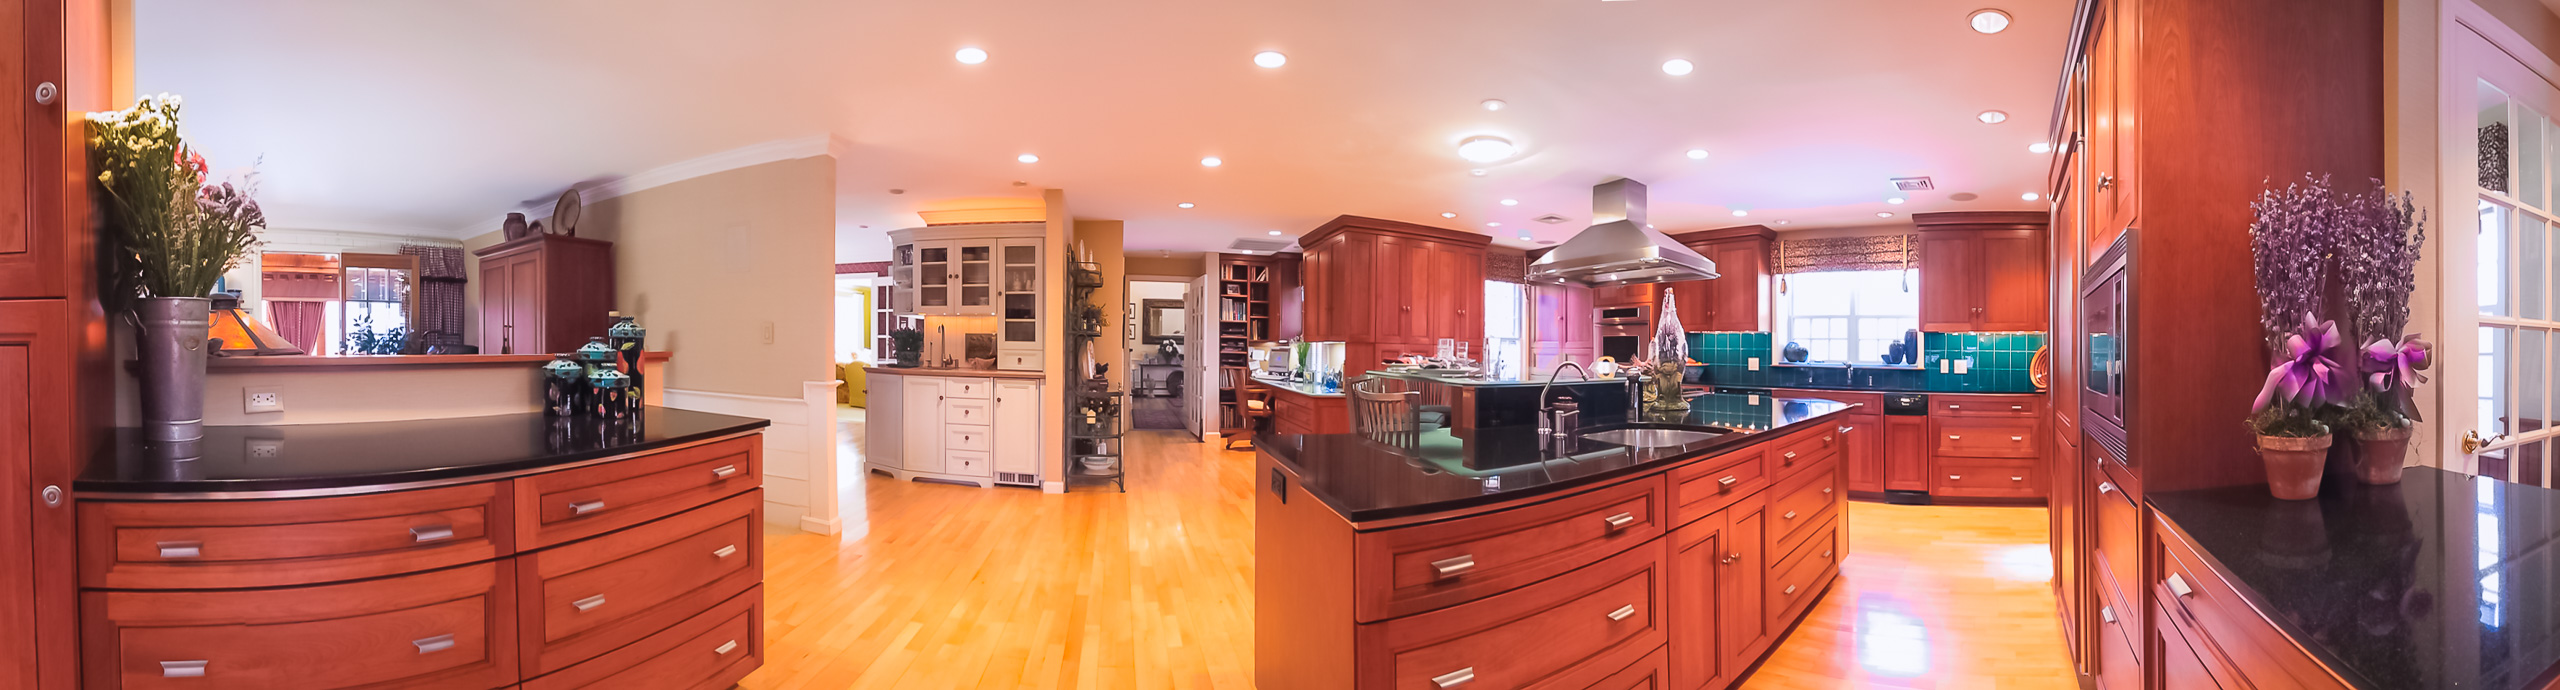 Panorama of kitchen/ dining/ office